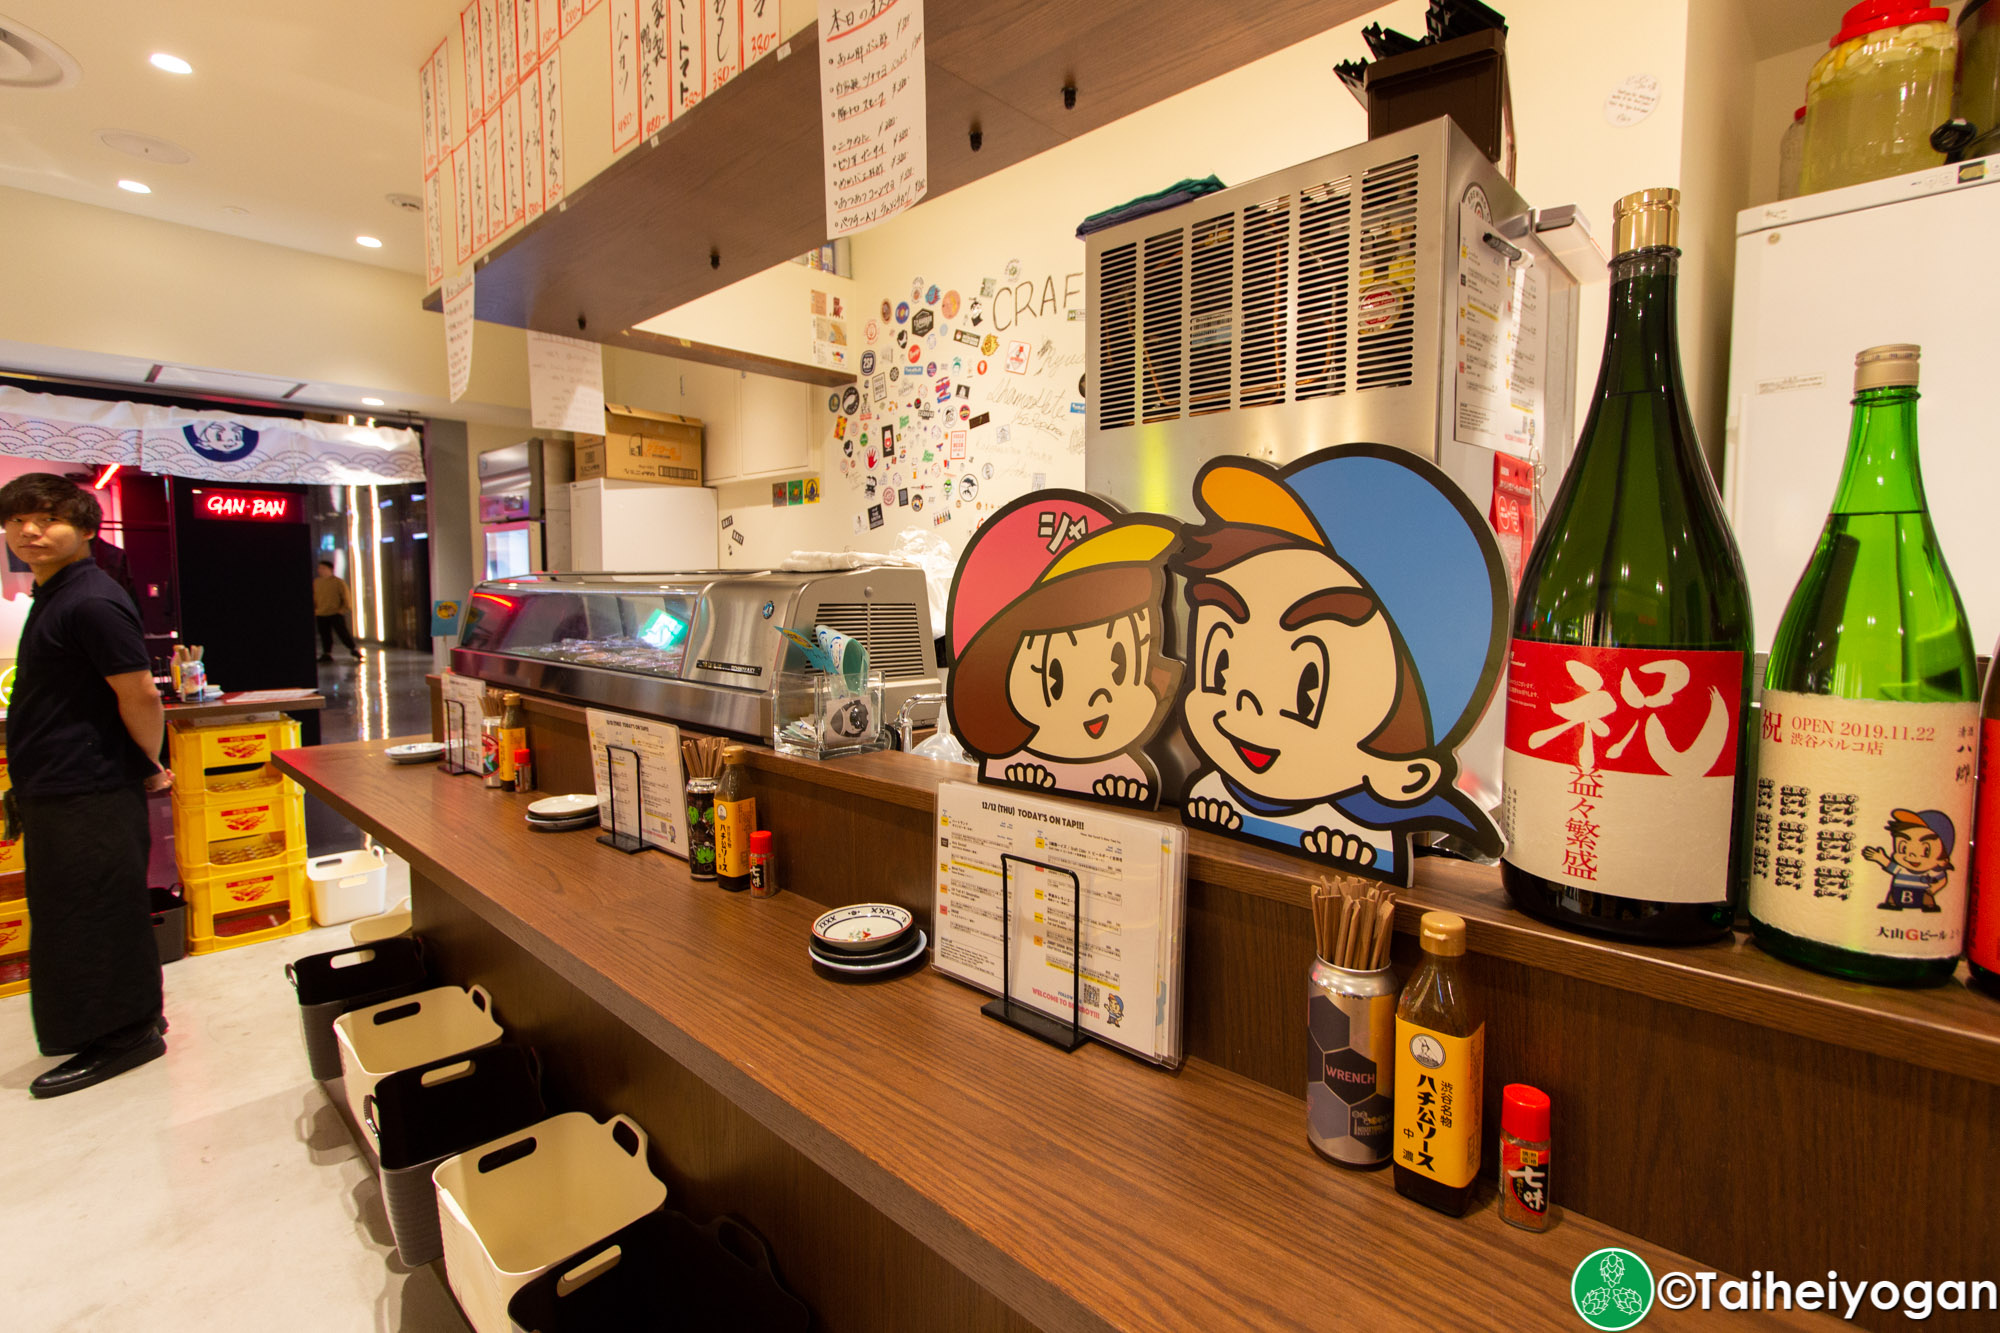 立ち飲みビールボーイ・Standing Bar Beer Boy (渋谷パルコ店・Shibuya Parco) - Interior - Counter Area